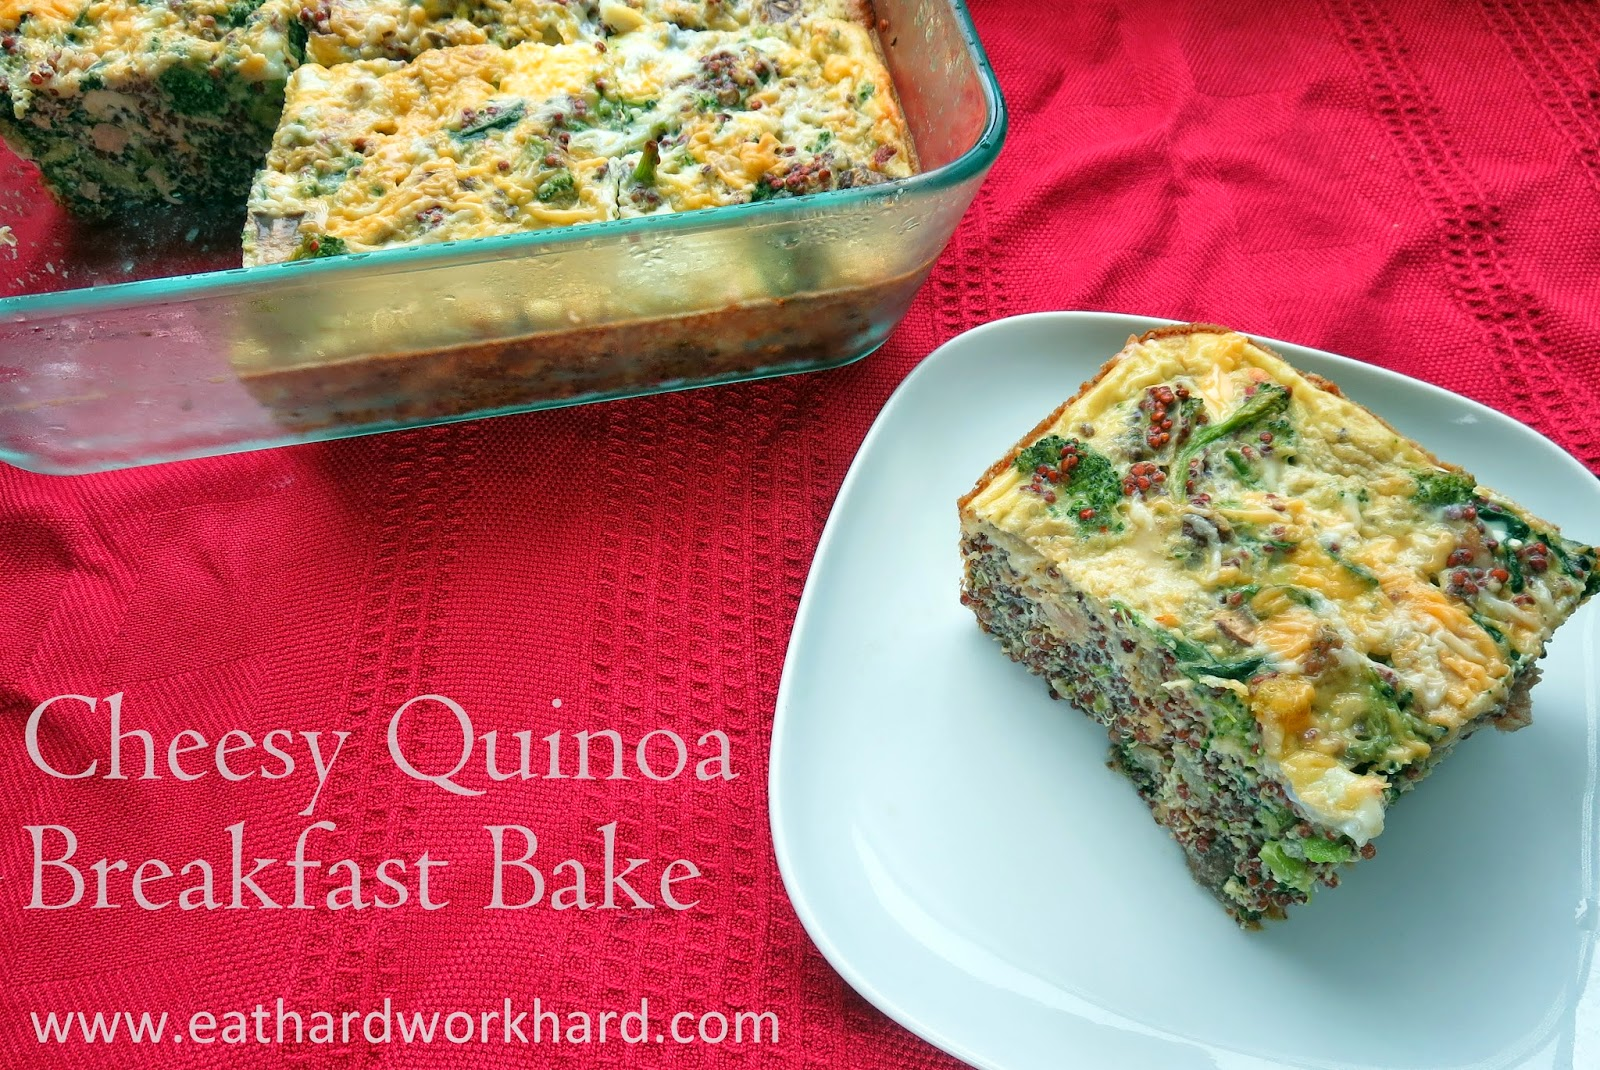 ... Meal Prep Monday - Cheesy Quinoa Breakfast Bake and Shredded Chicken